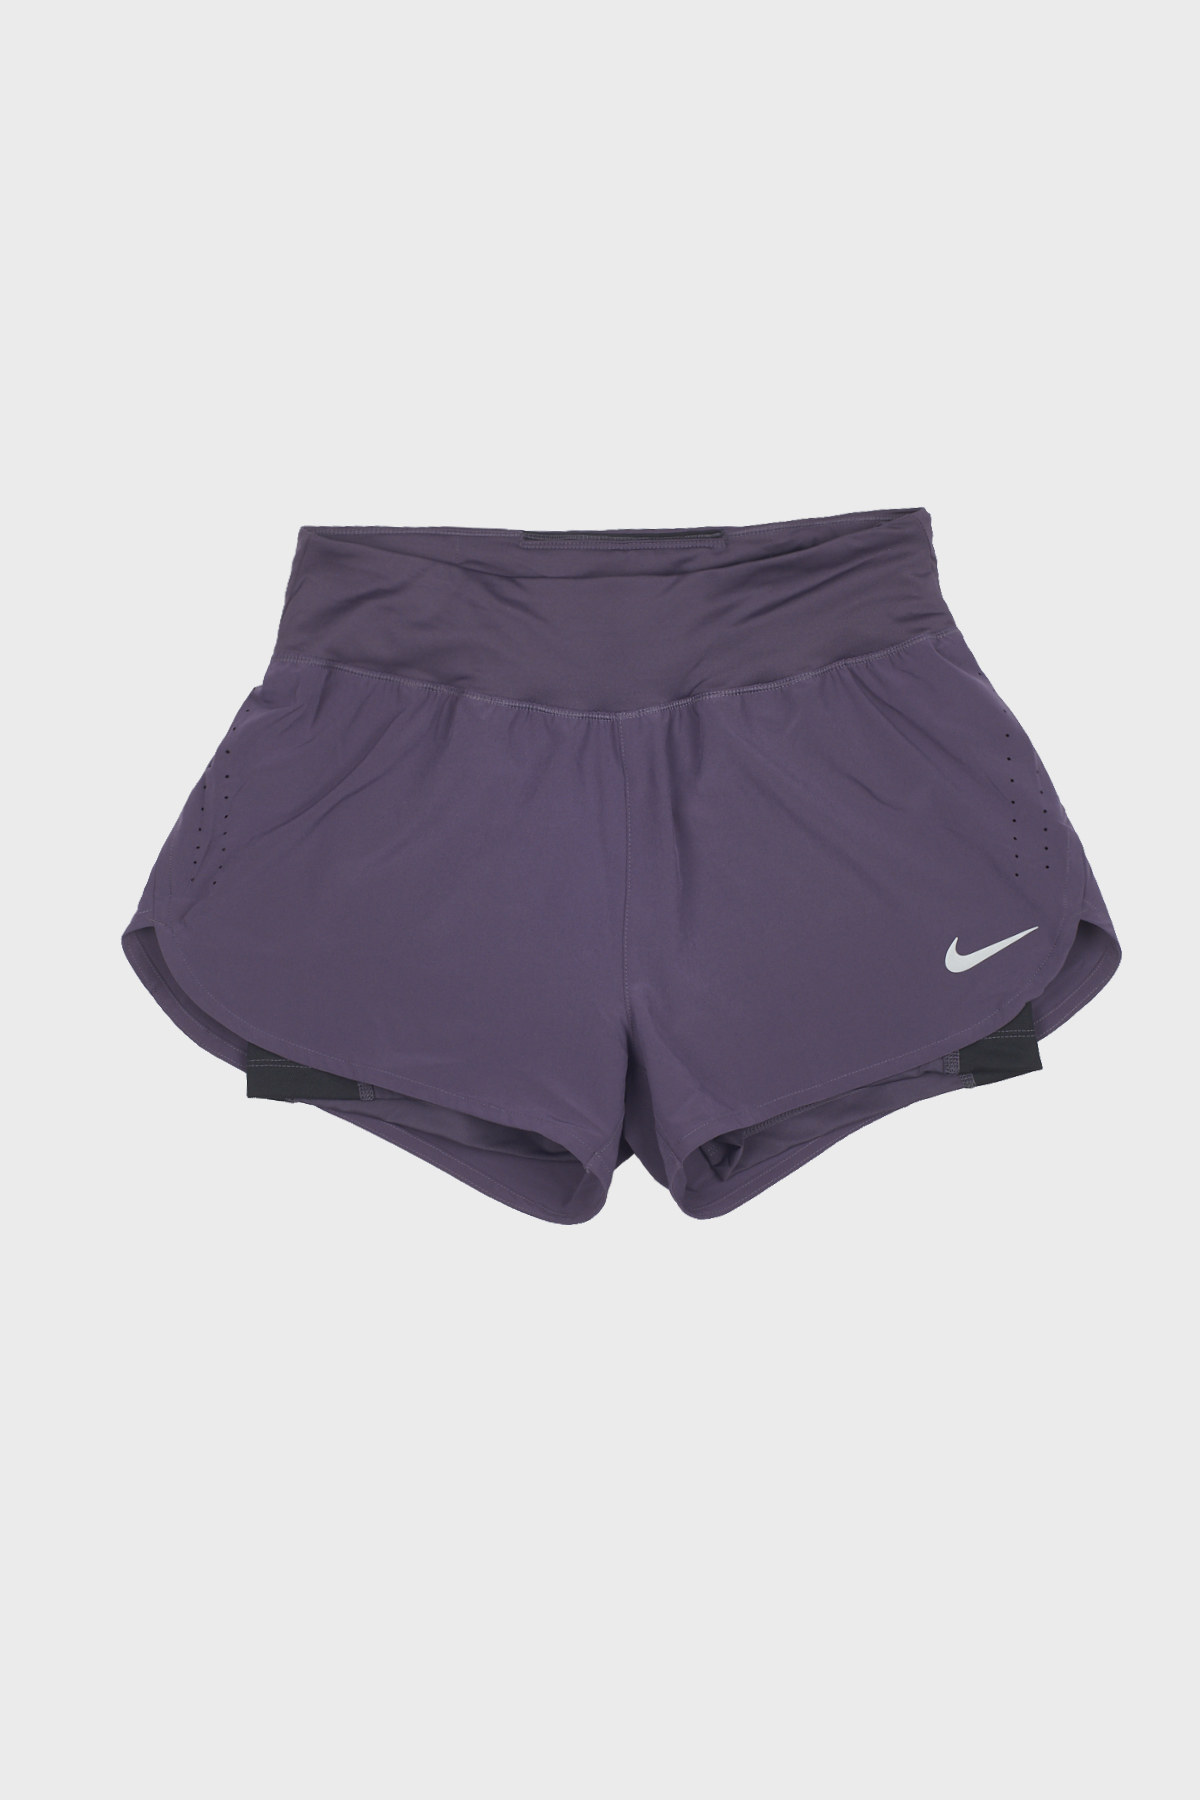 Nike - Short Eclipse 2 in 1 - Purple